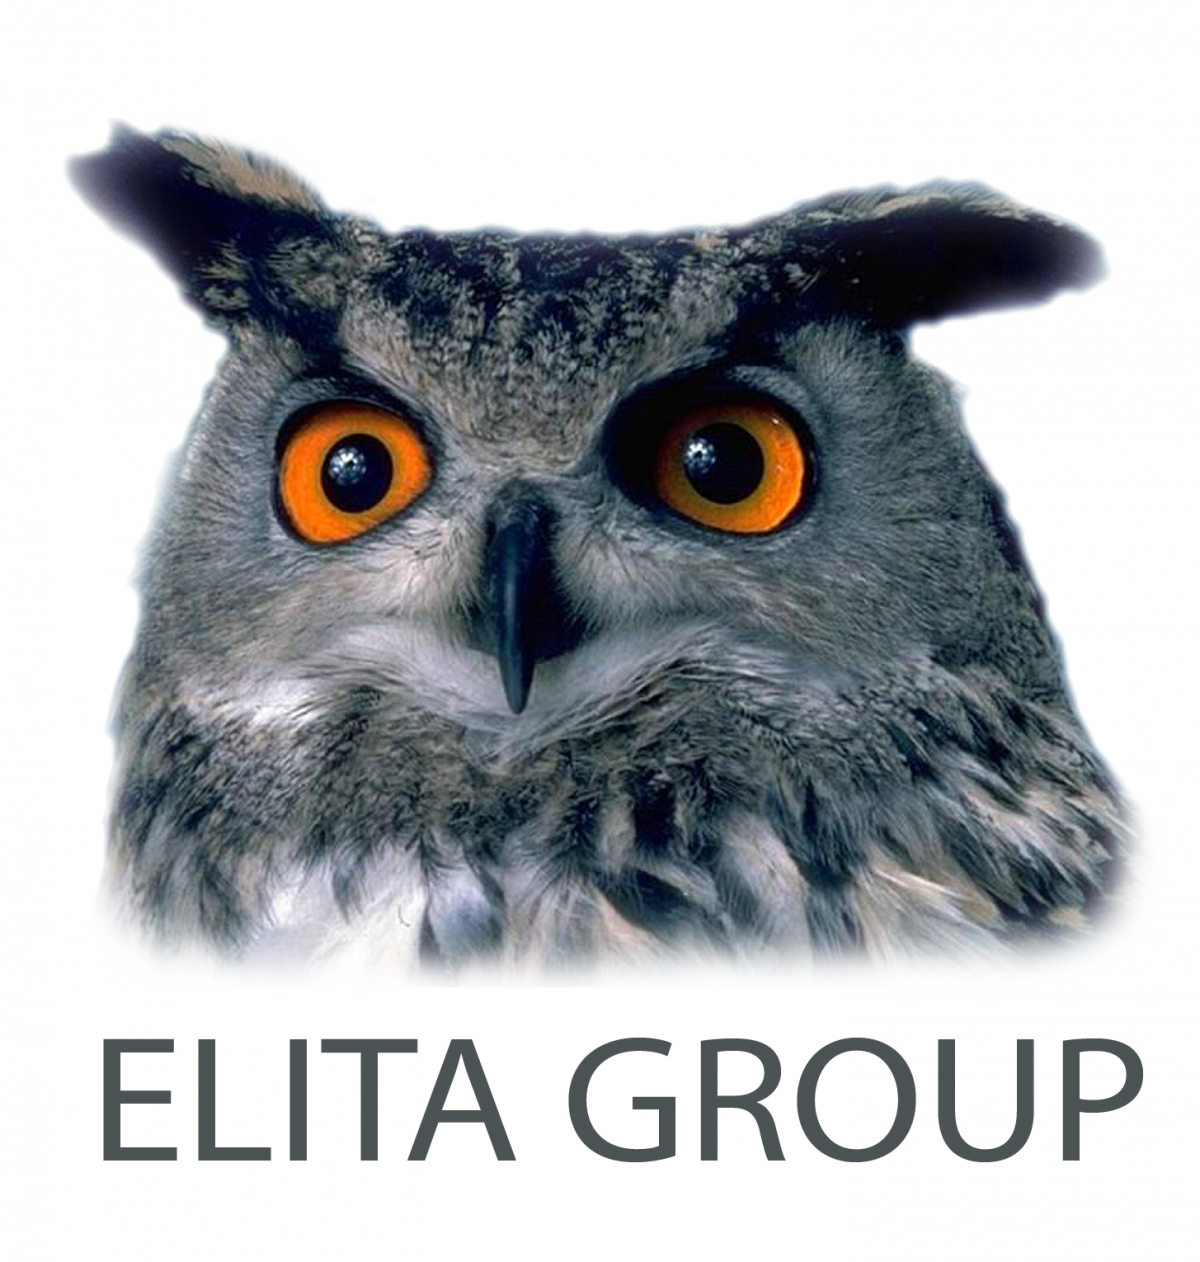 Фото: Логотип Elita Group